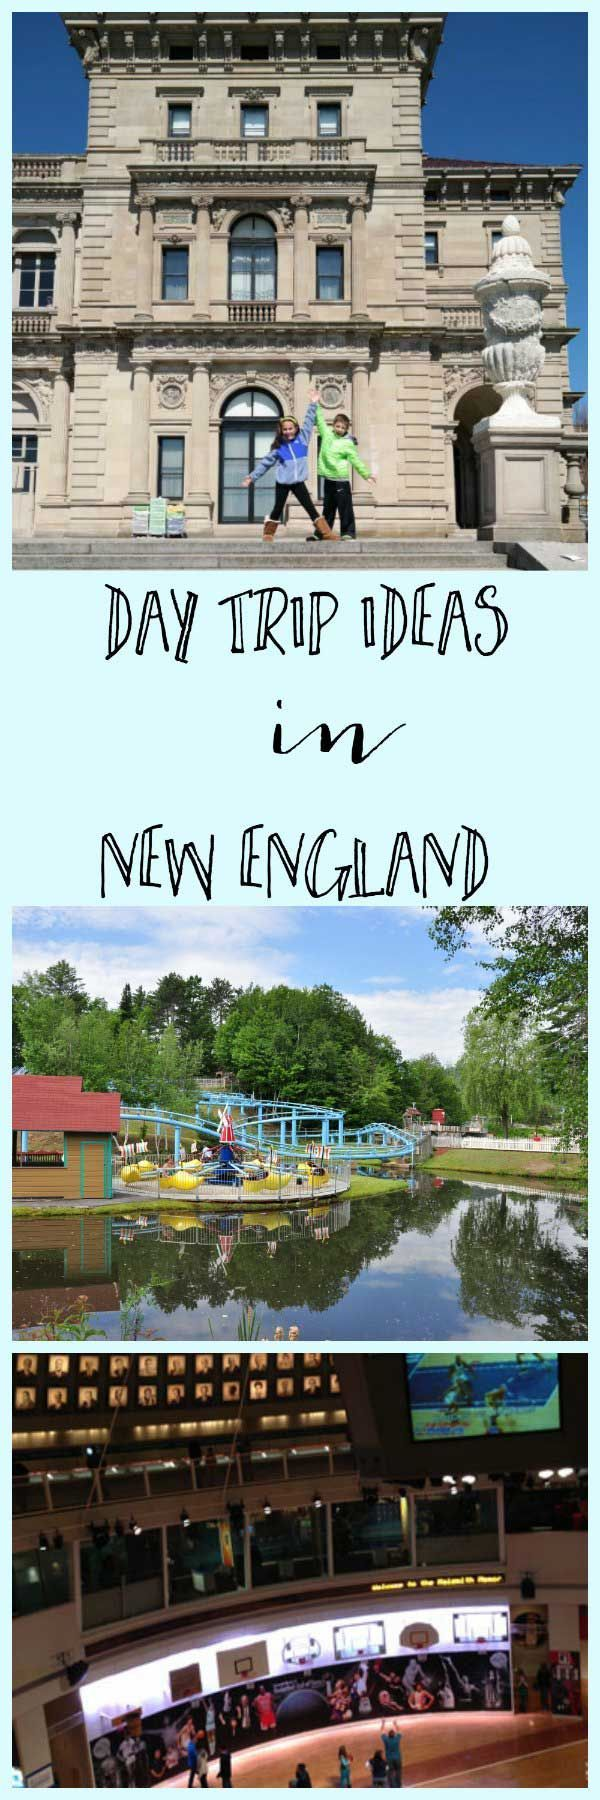 A collection of day trip ideas in New England, including spots in Boston, Portland, Maine, North Conway, New Hampshire, and Newport, RI.